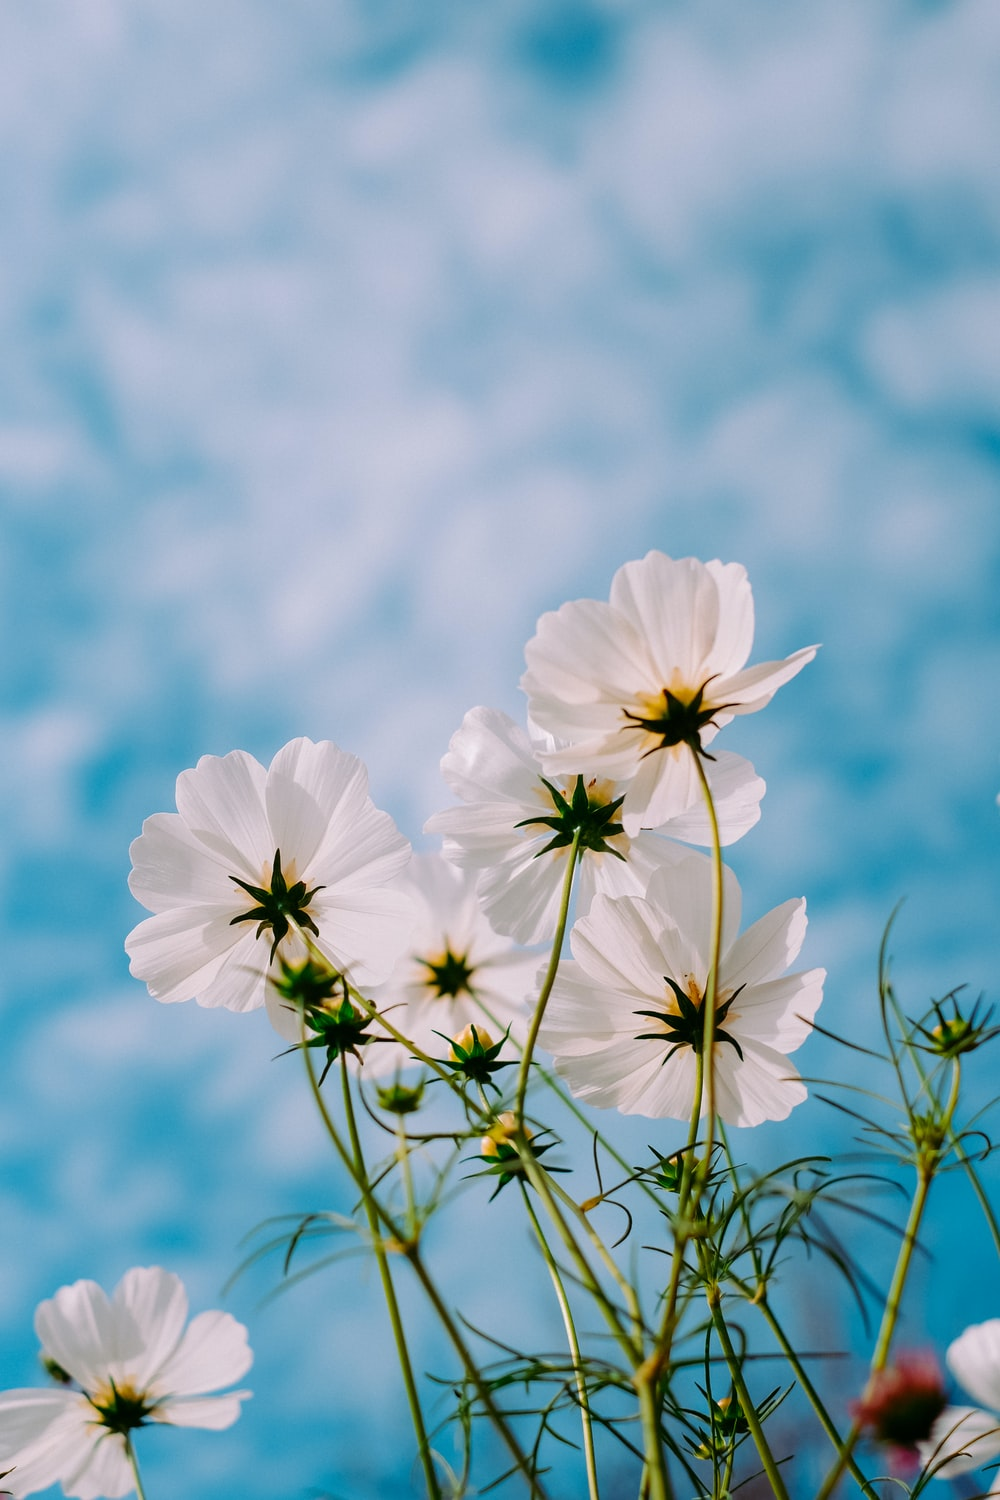 white petaled flowers during day